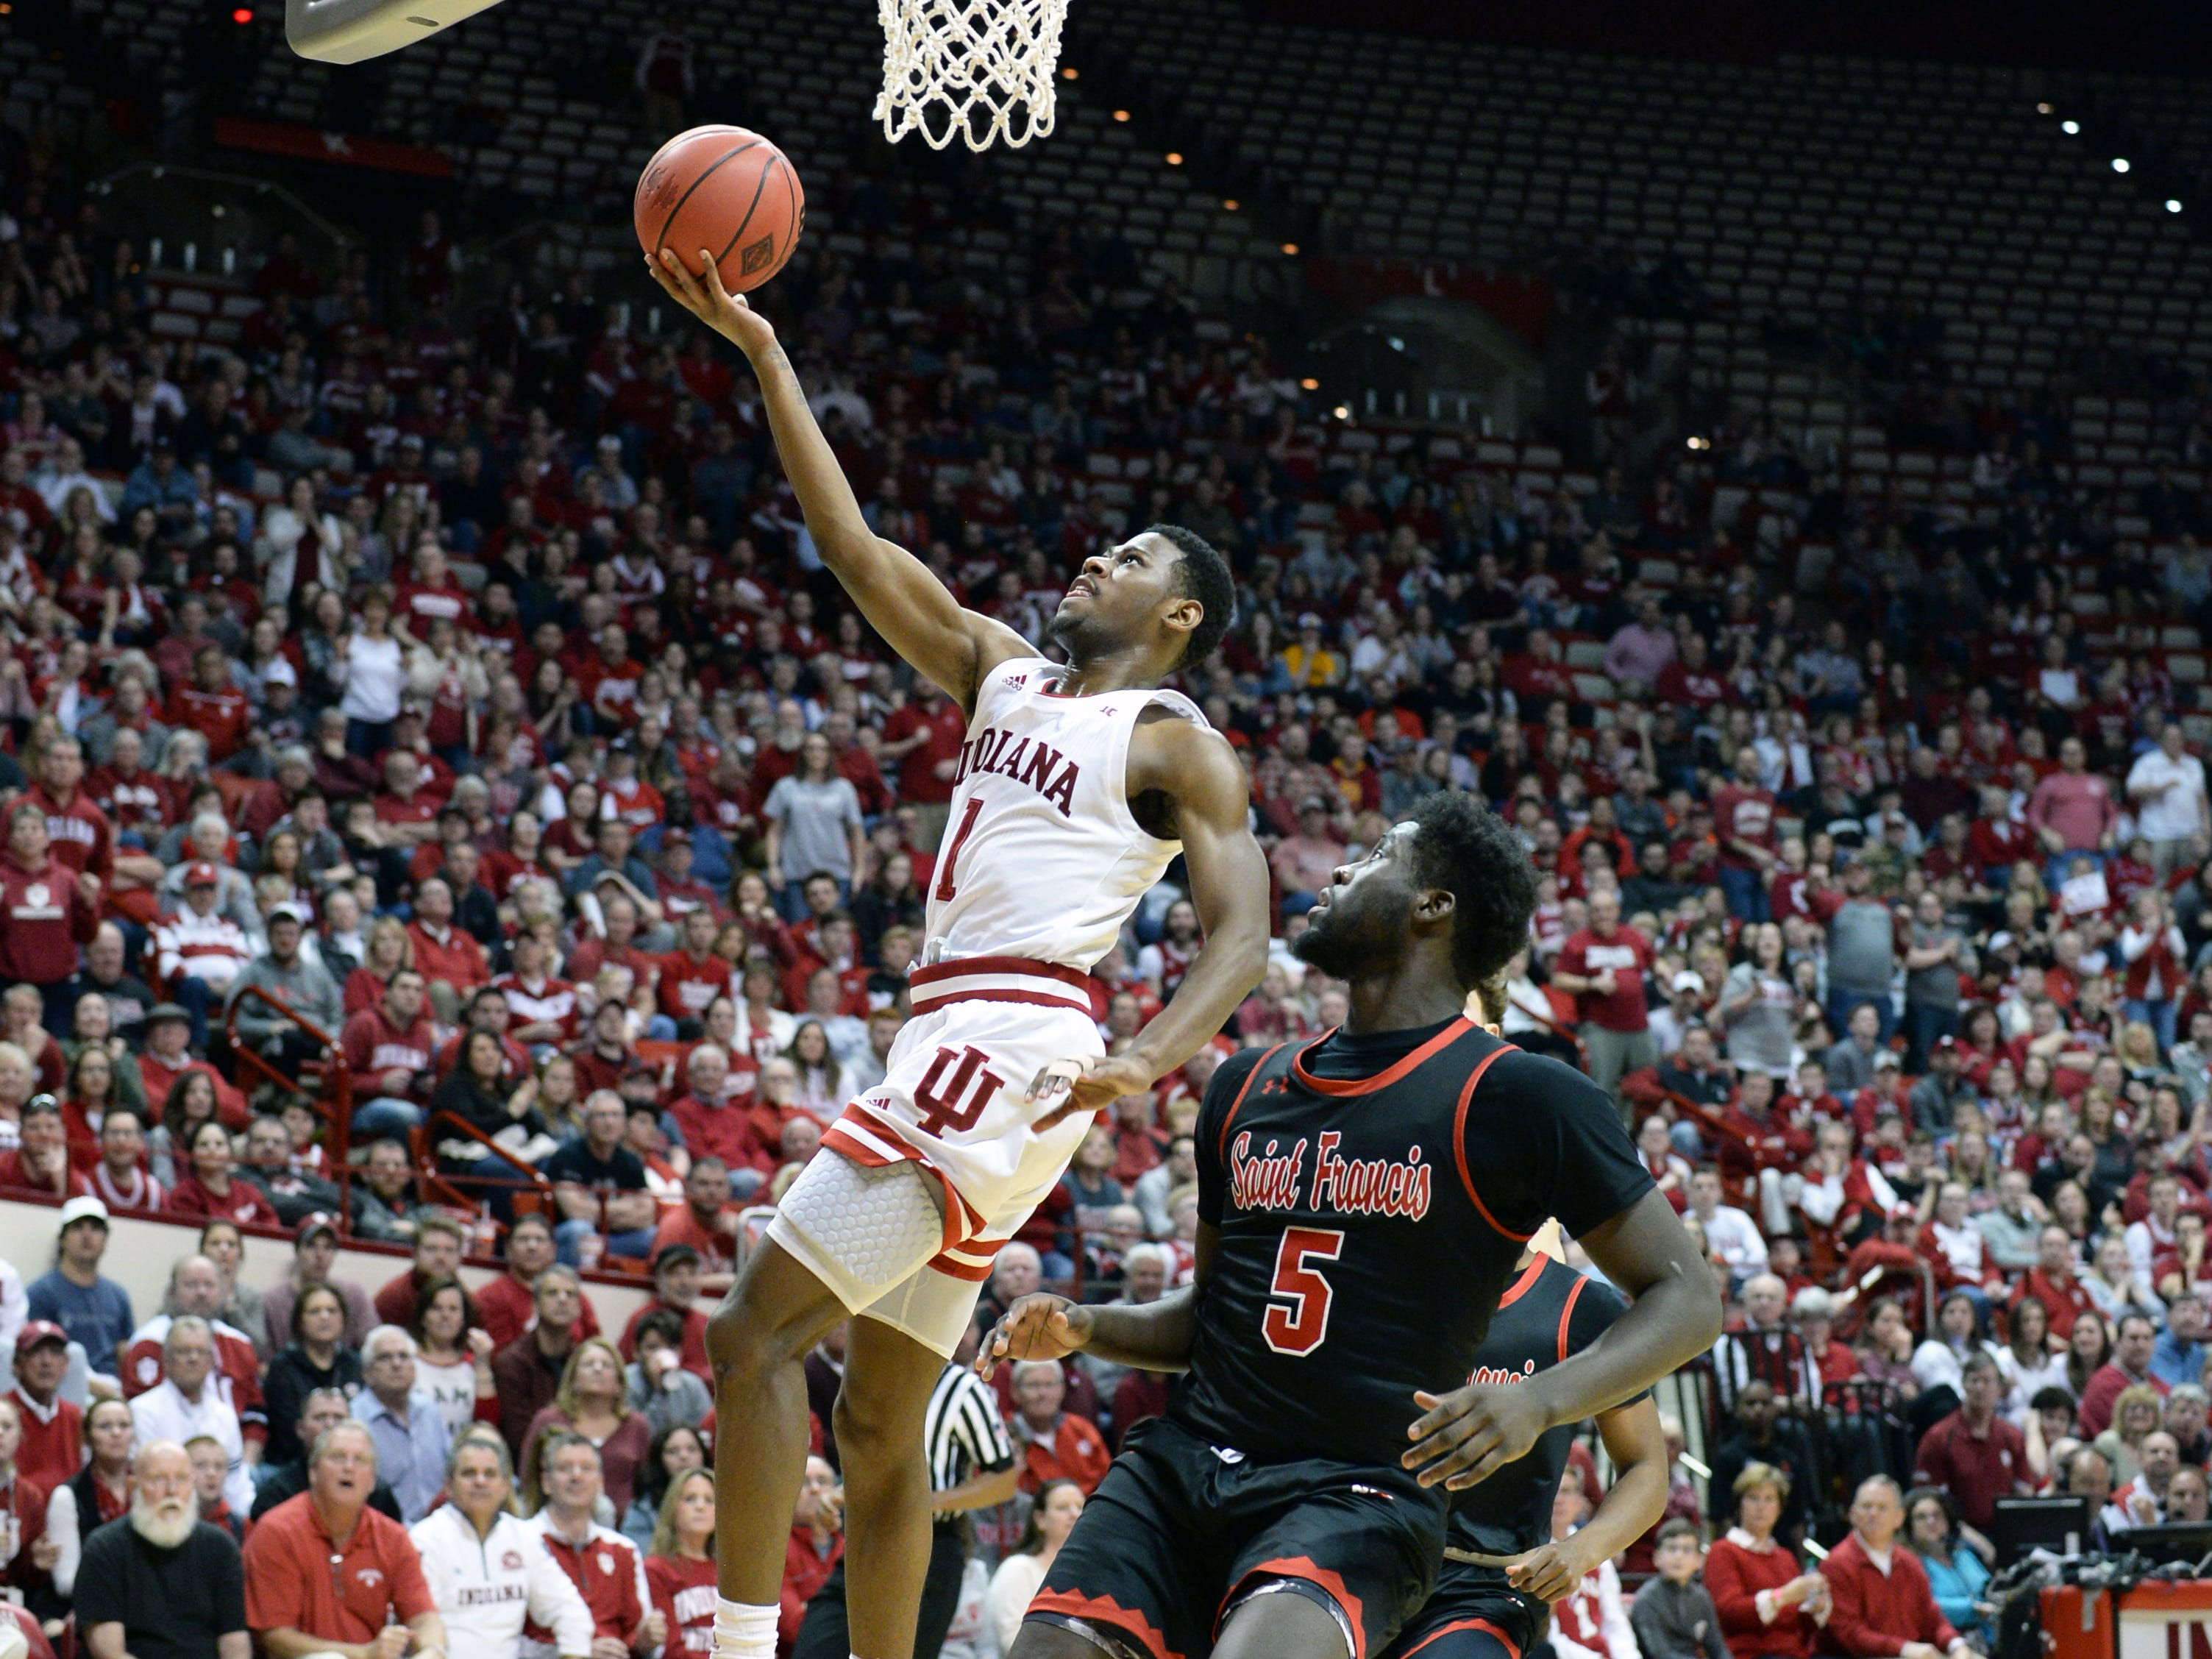 Indiana Hoosiers guard Al Durham (1) lays the ball in during the game against St. Francis (Pa.) at Simon Skjodt Assembly Hall in Bloomington Ind., on Tuesday, March 19, 2019.